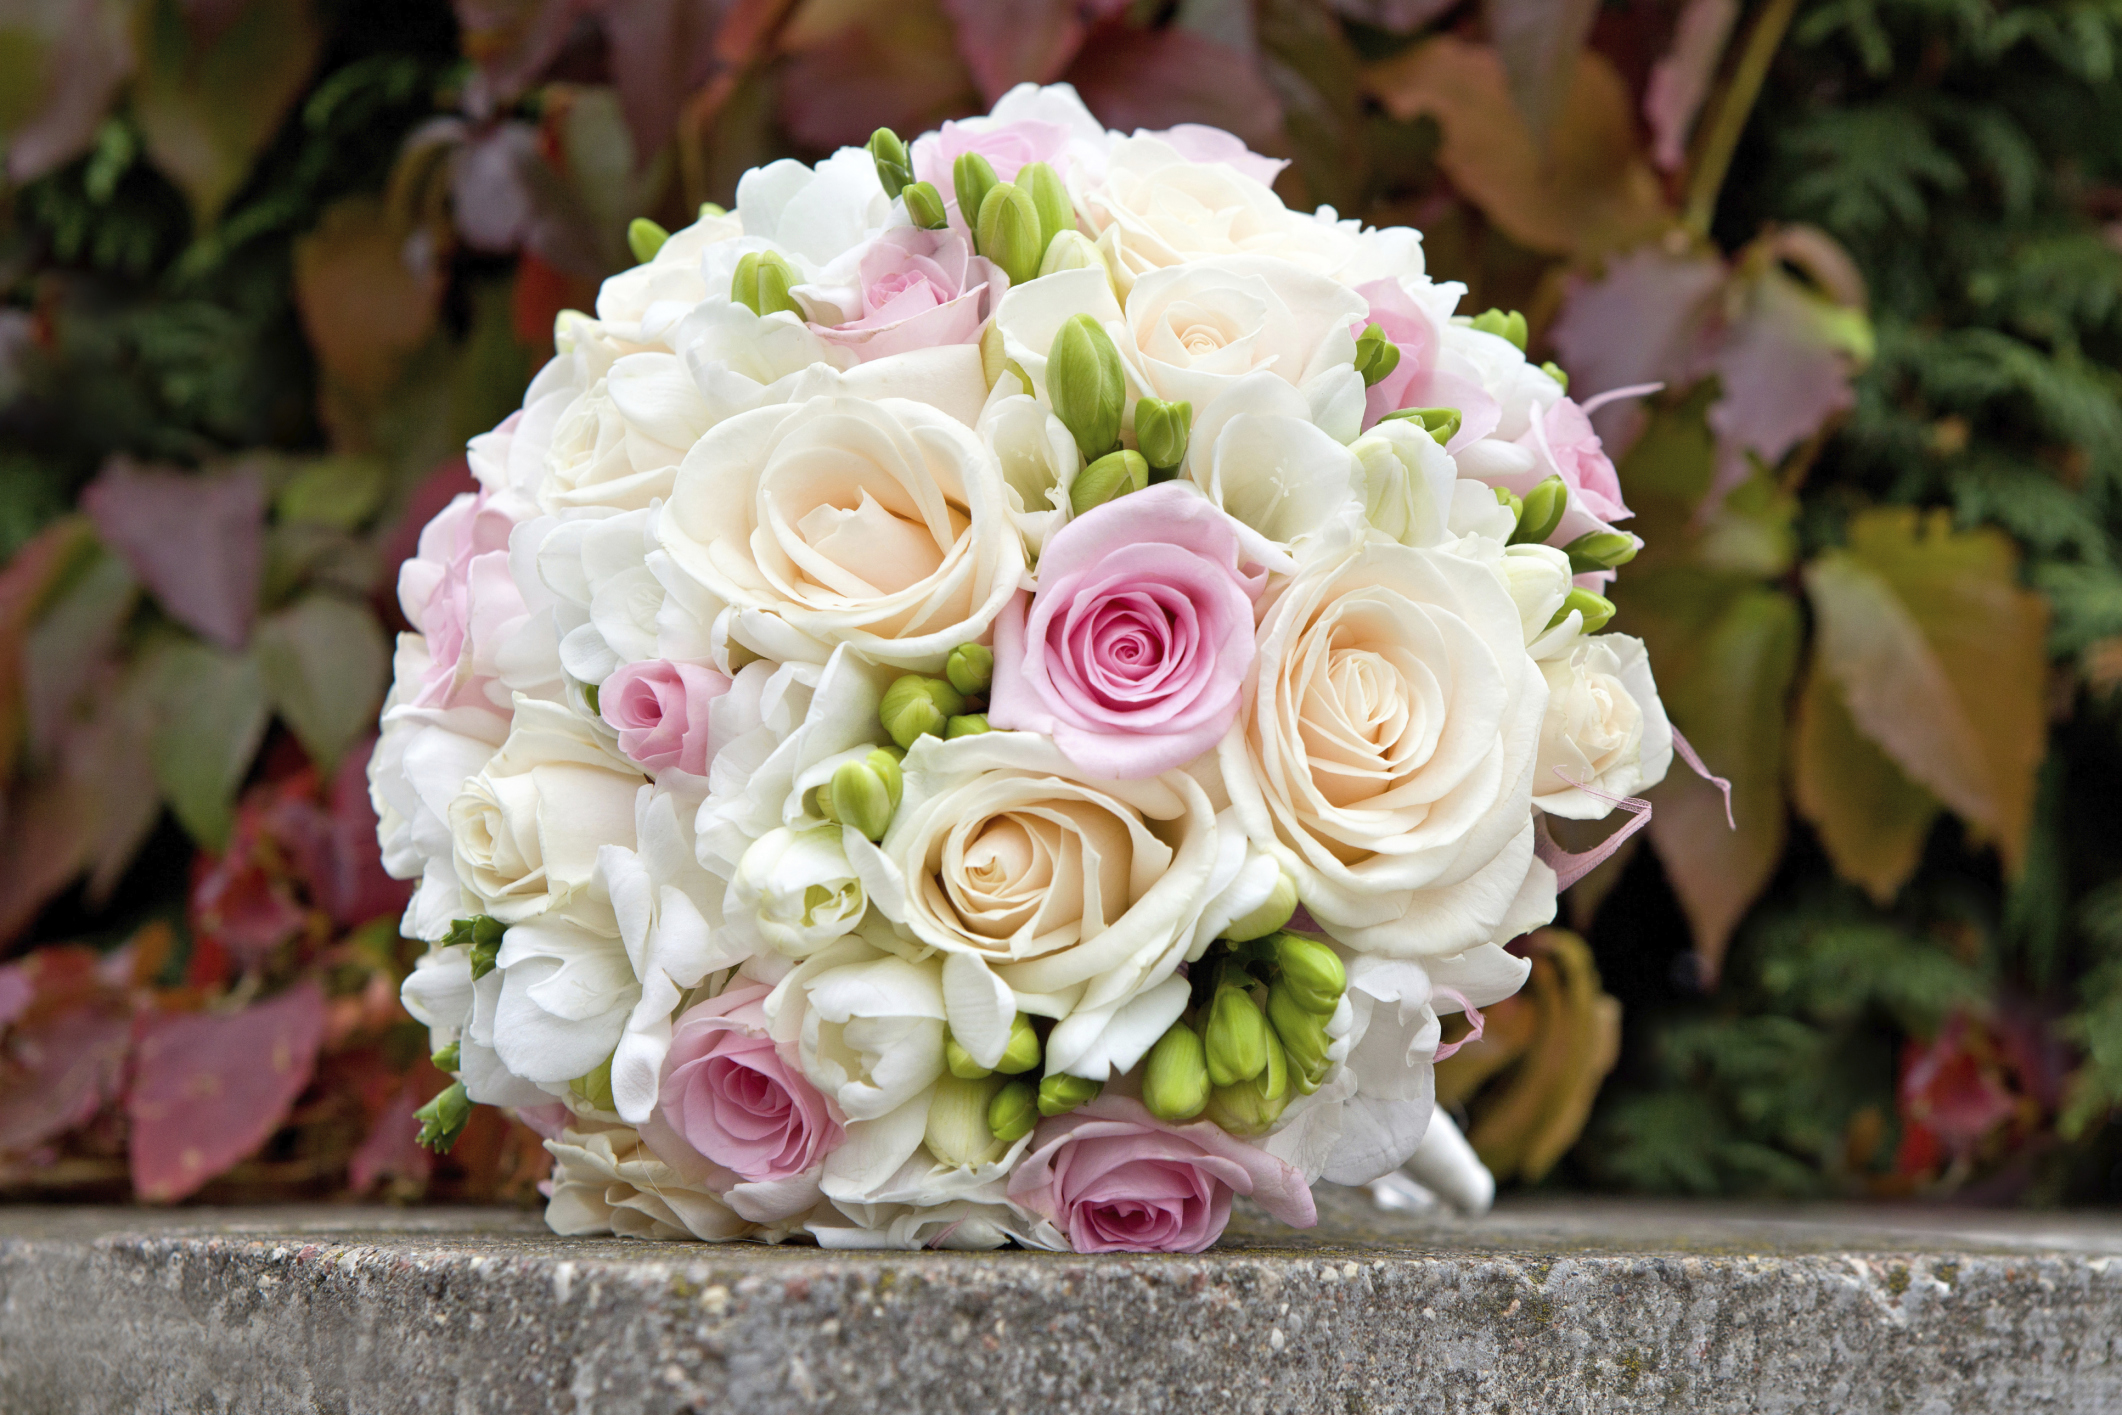 matching your flowers to your wedding theme - articles